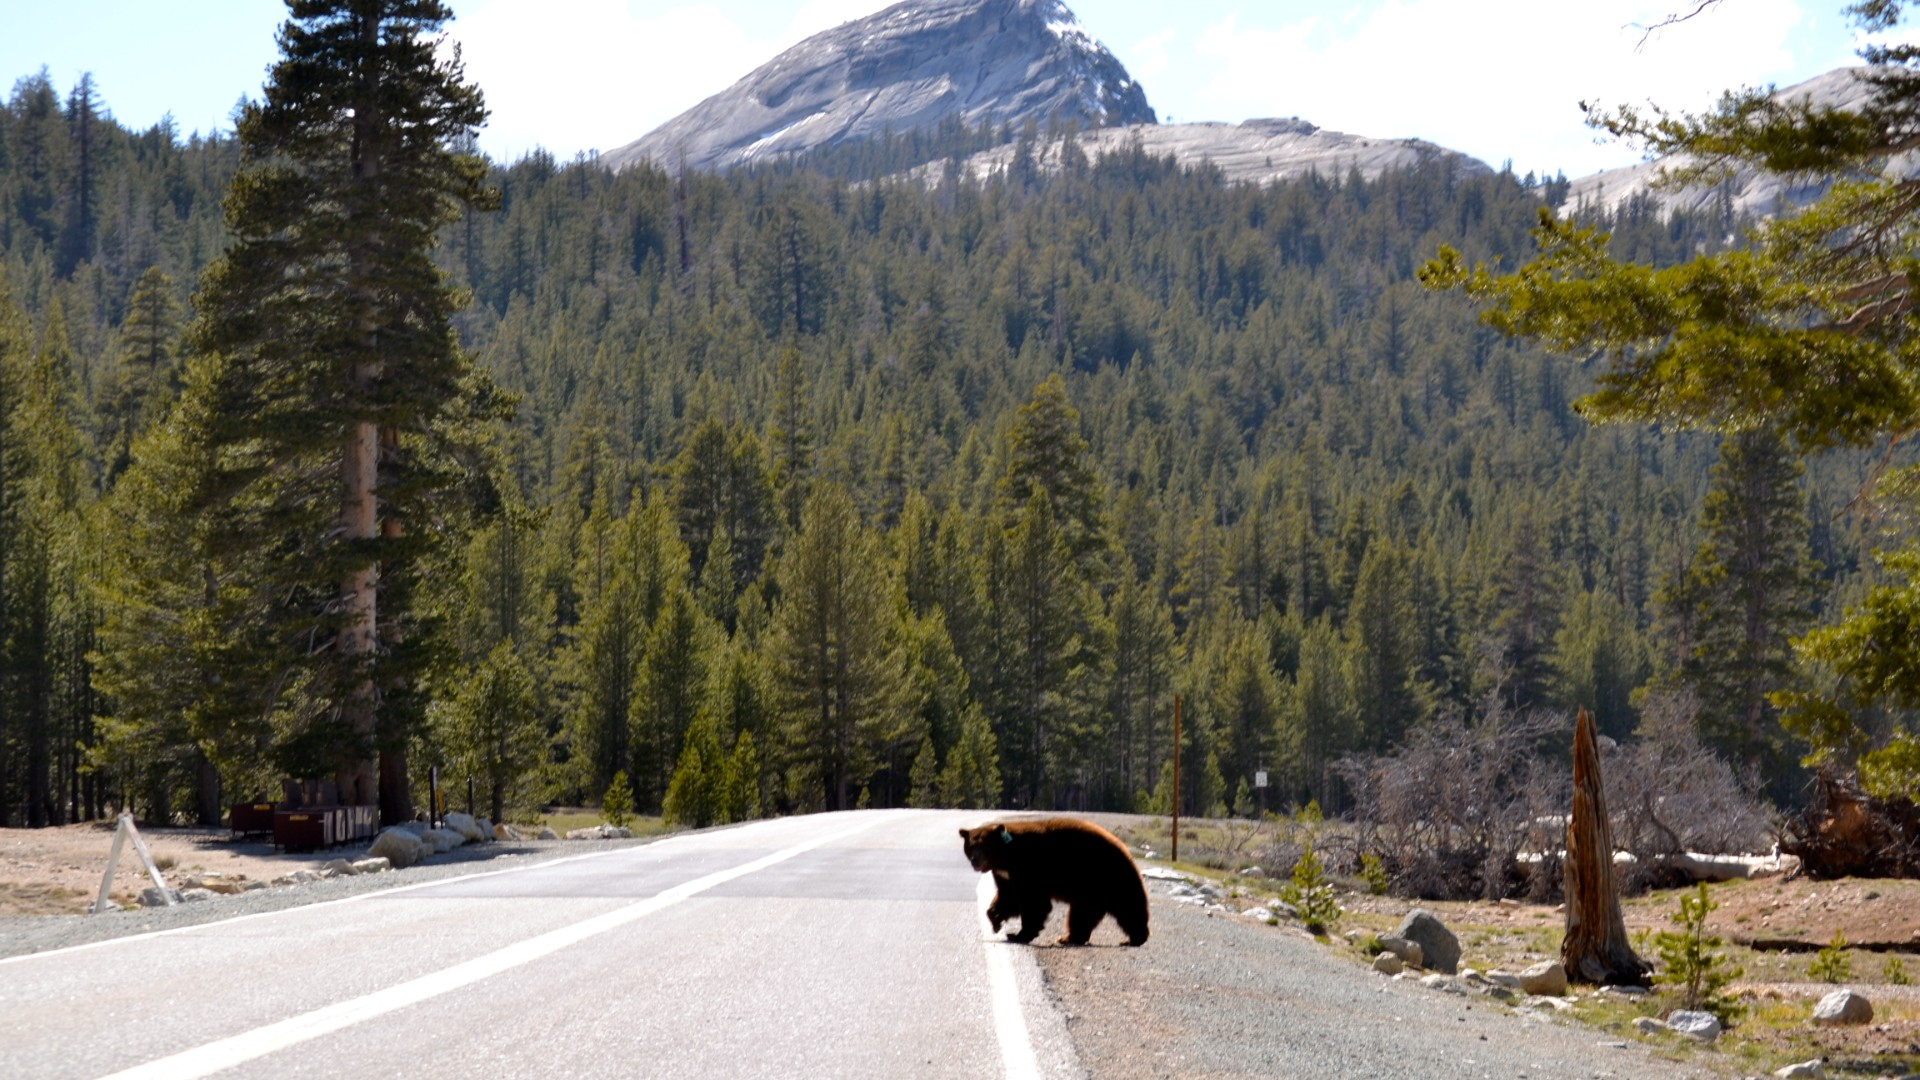 FILE: A bear is seen crossing a read in this file photo from Yosemite National Park.